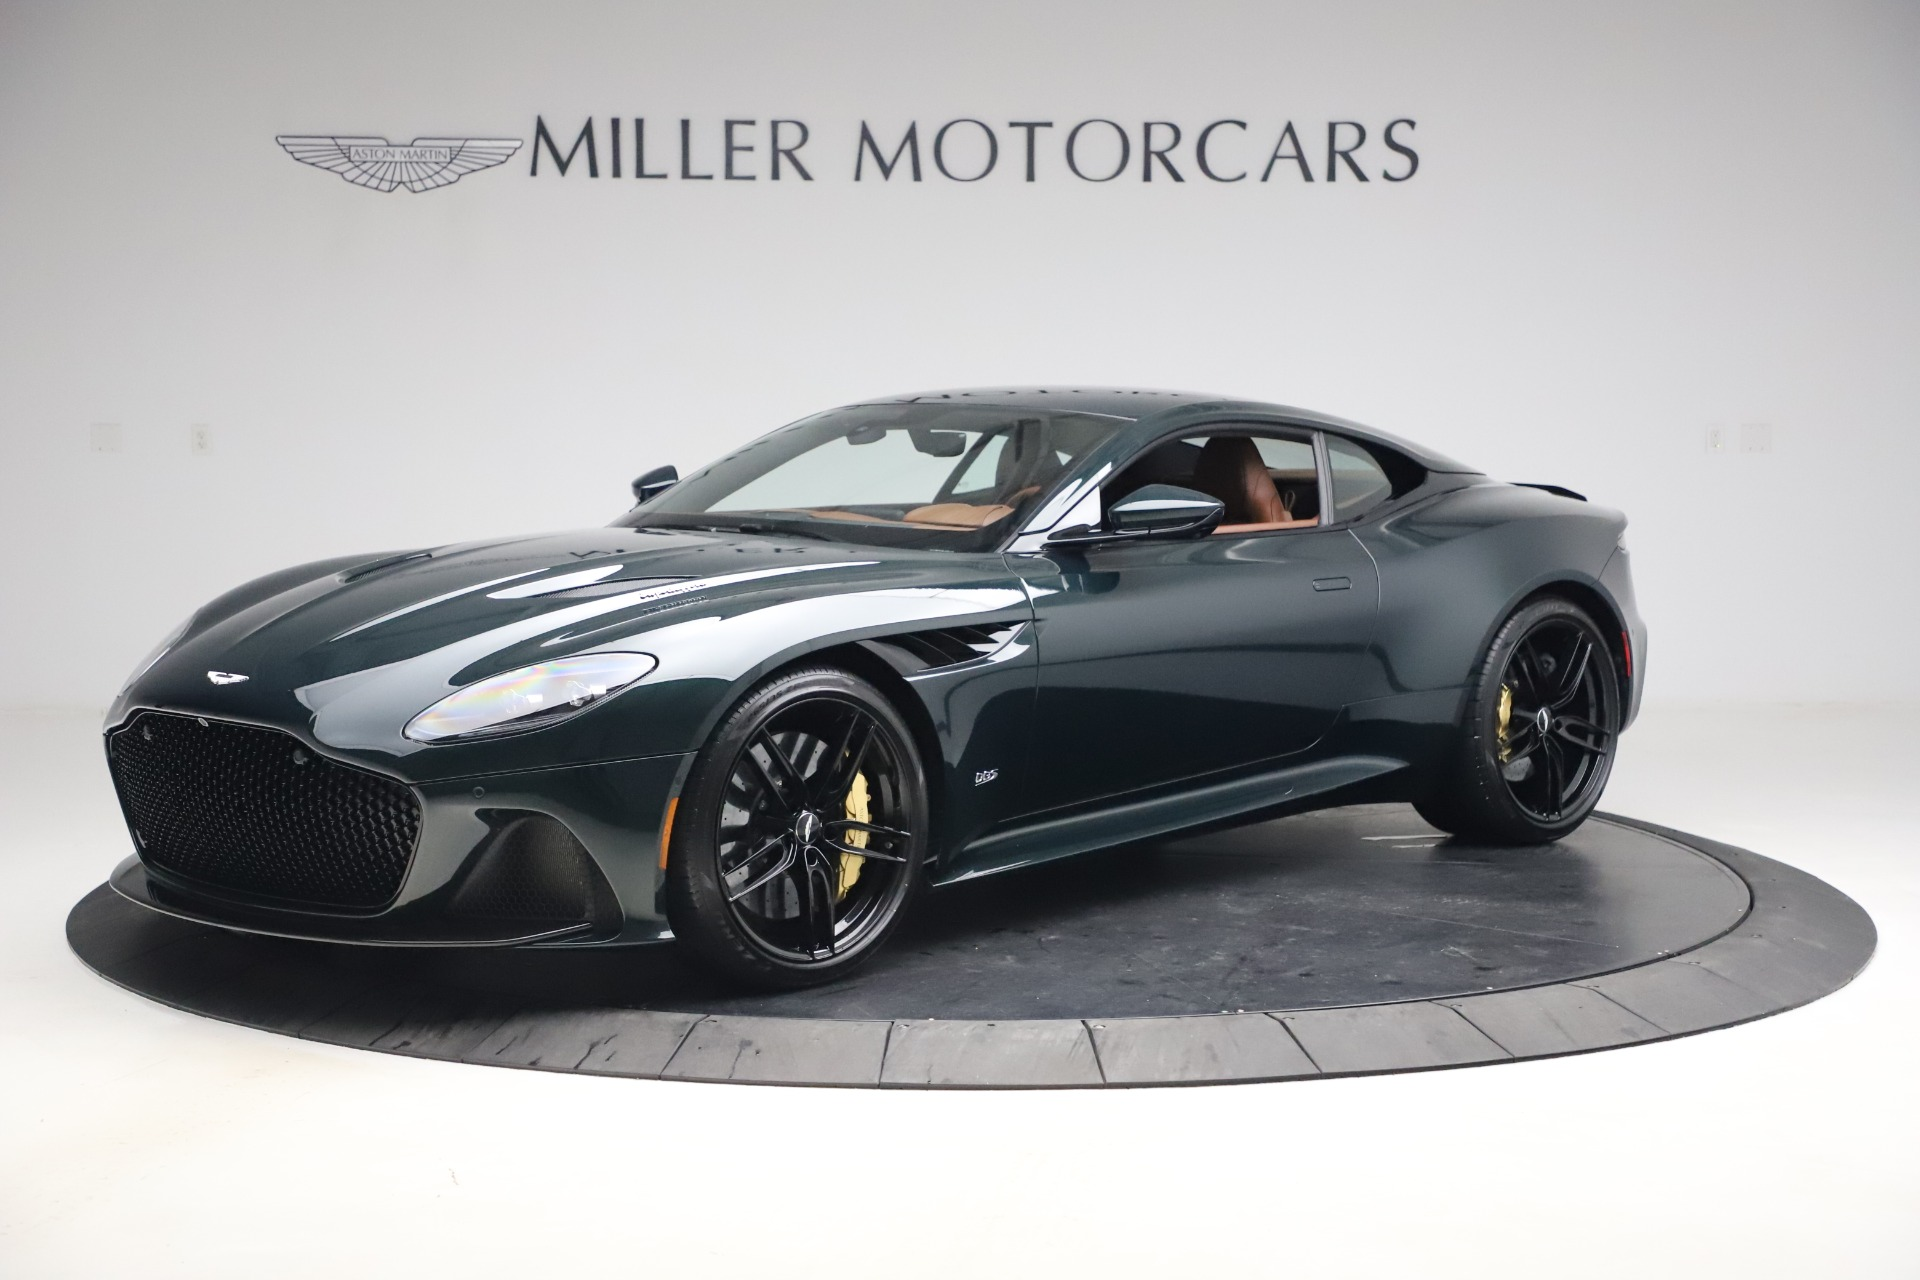 Used 2020 Aston Martin DBS Superleggera for sale $295,900 at Rolls-Royce Motor Cars Greenwich in Greenwich CT 06830 1